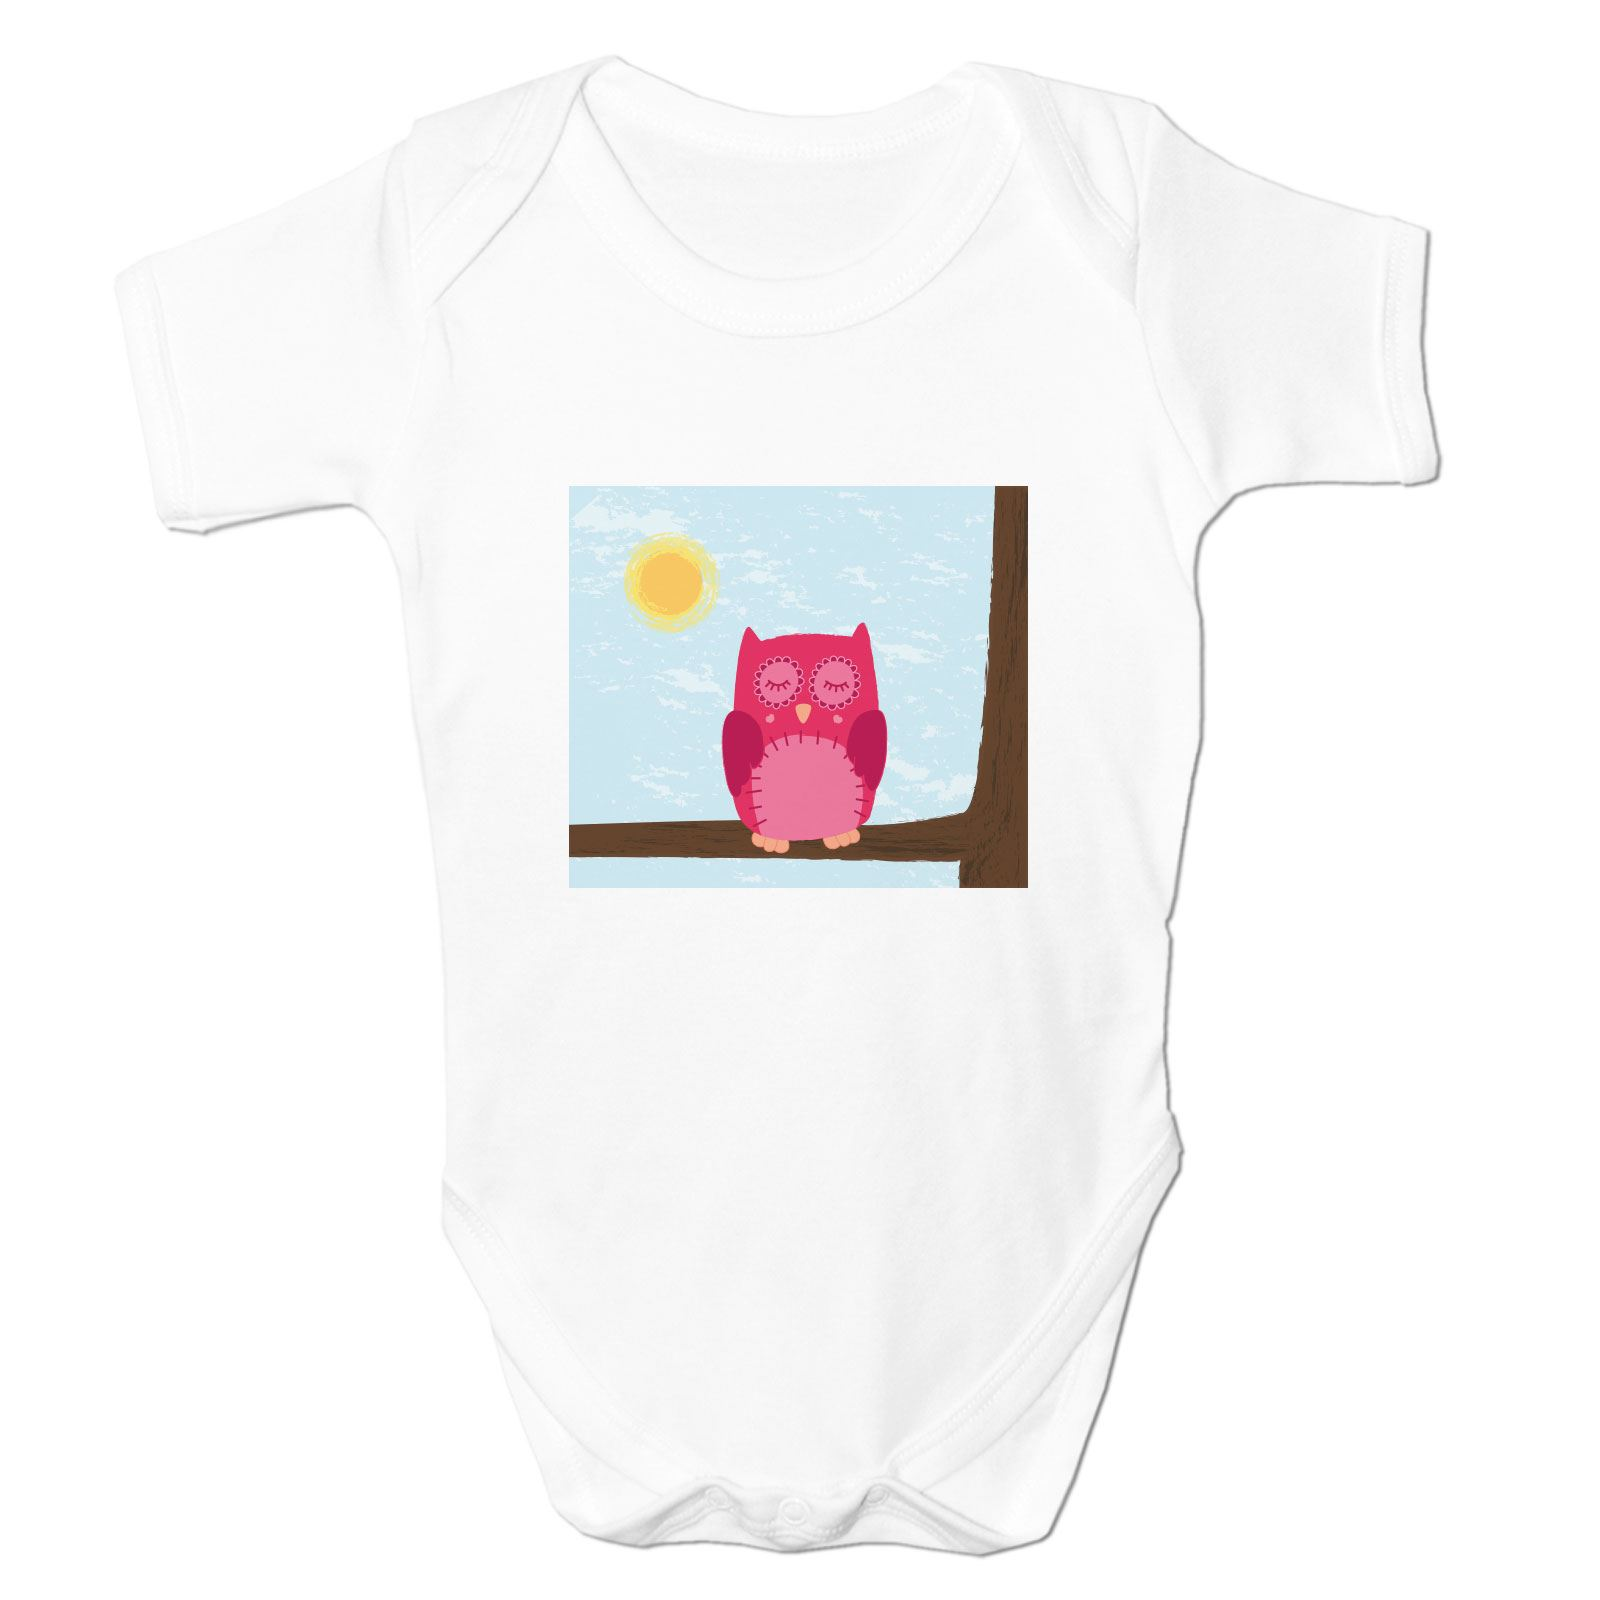 Baby Grow Clothes Novelty Gifts for Babies Boys Sleepy Owl